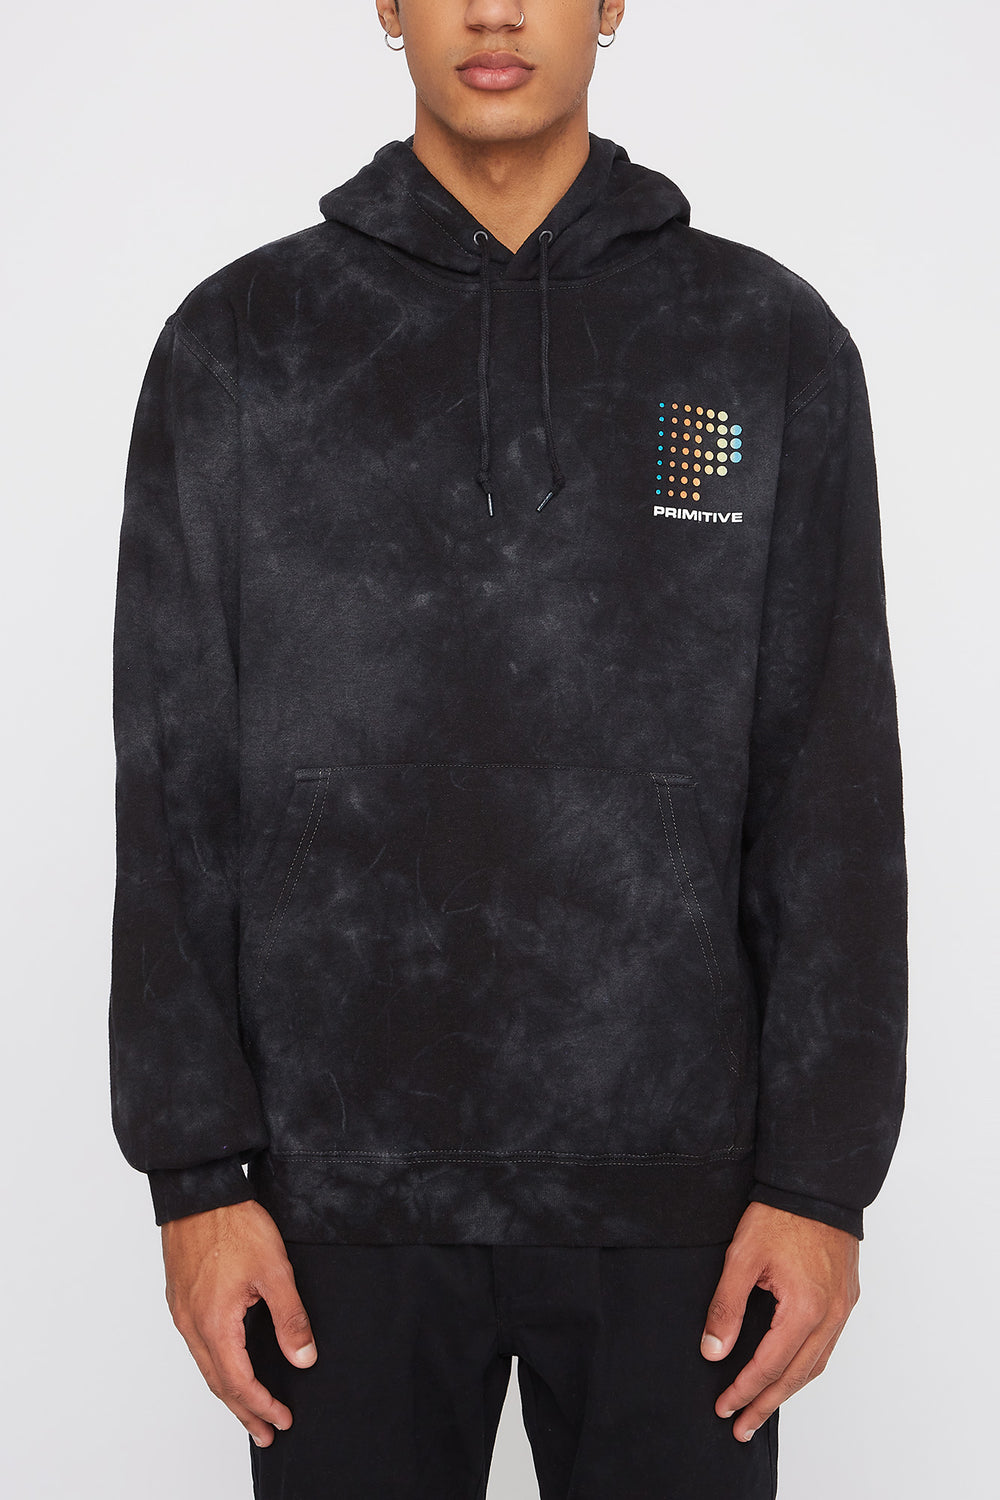 Primitive Mens Acid Wash Hoodie Black